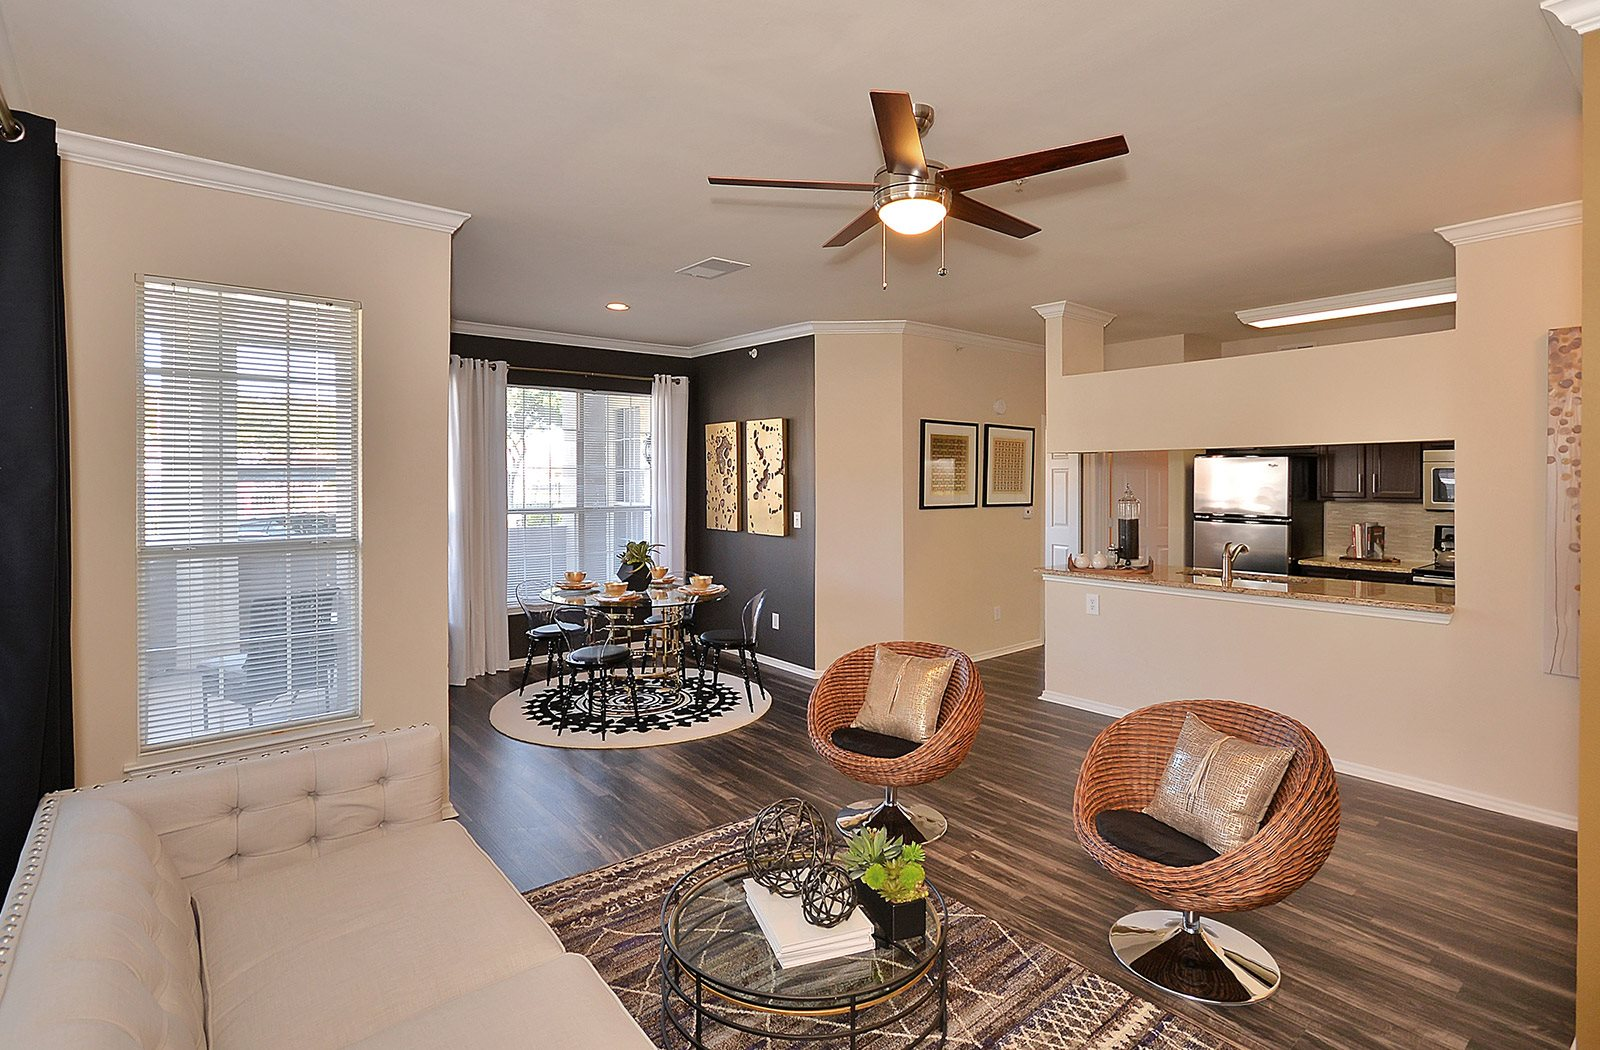 Plano homepagegallery 2